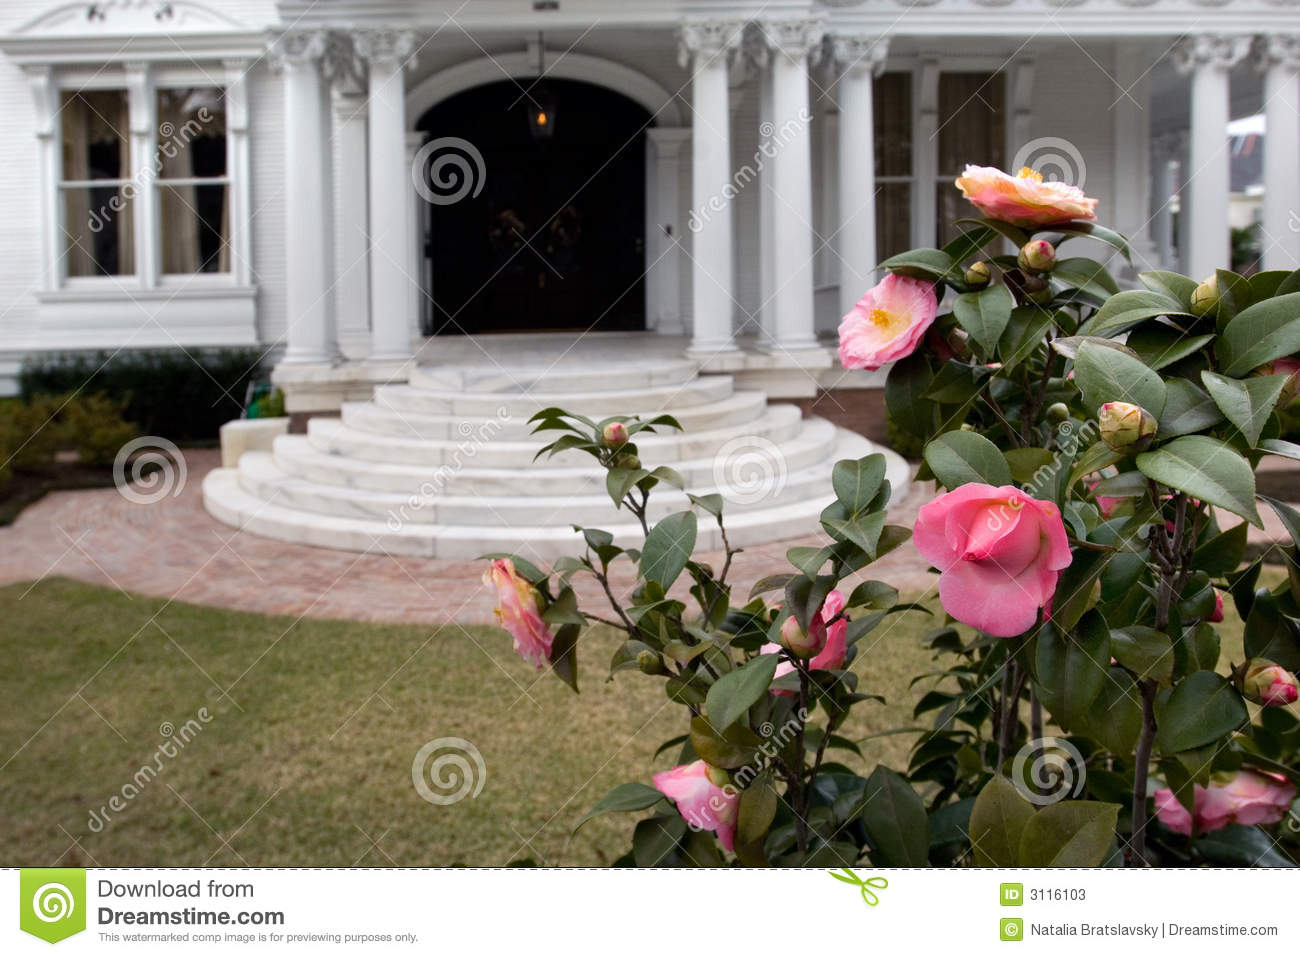 Garden District Stock Photos Image 3116103